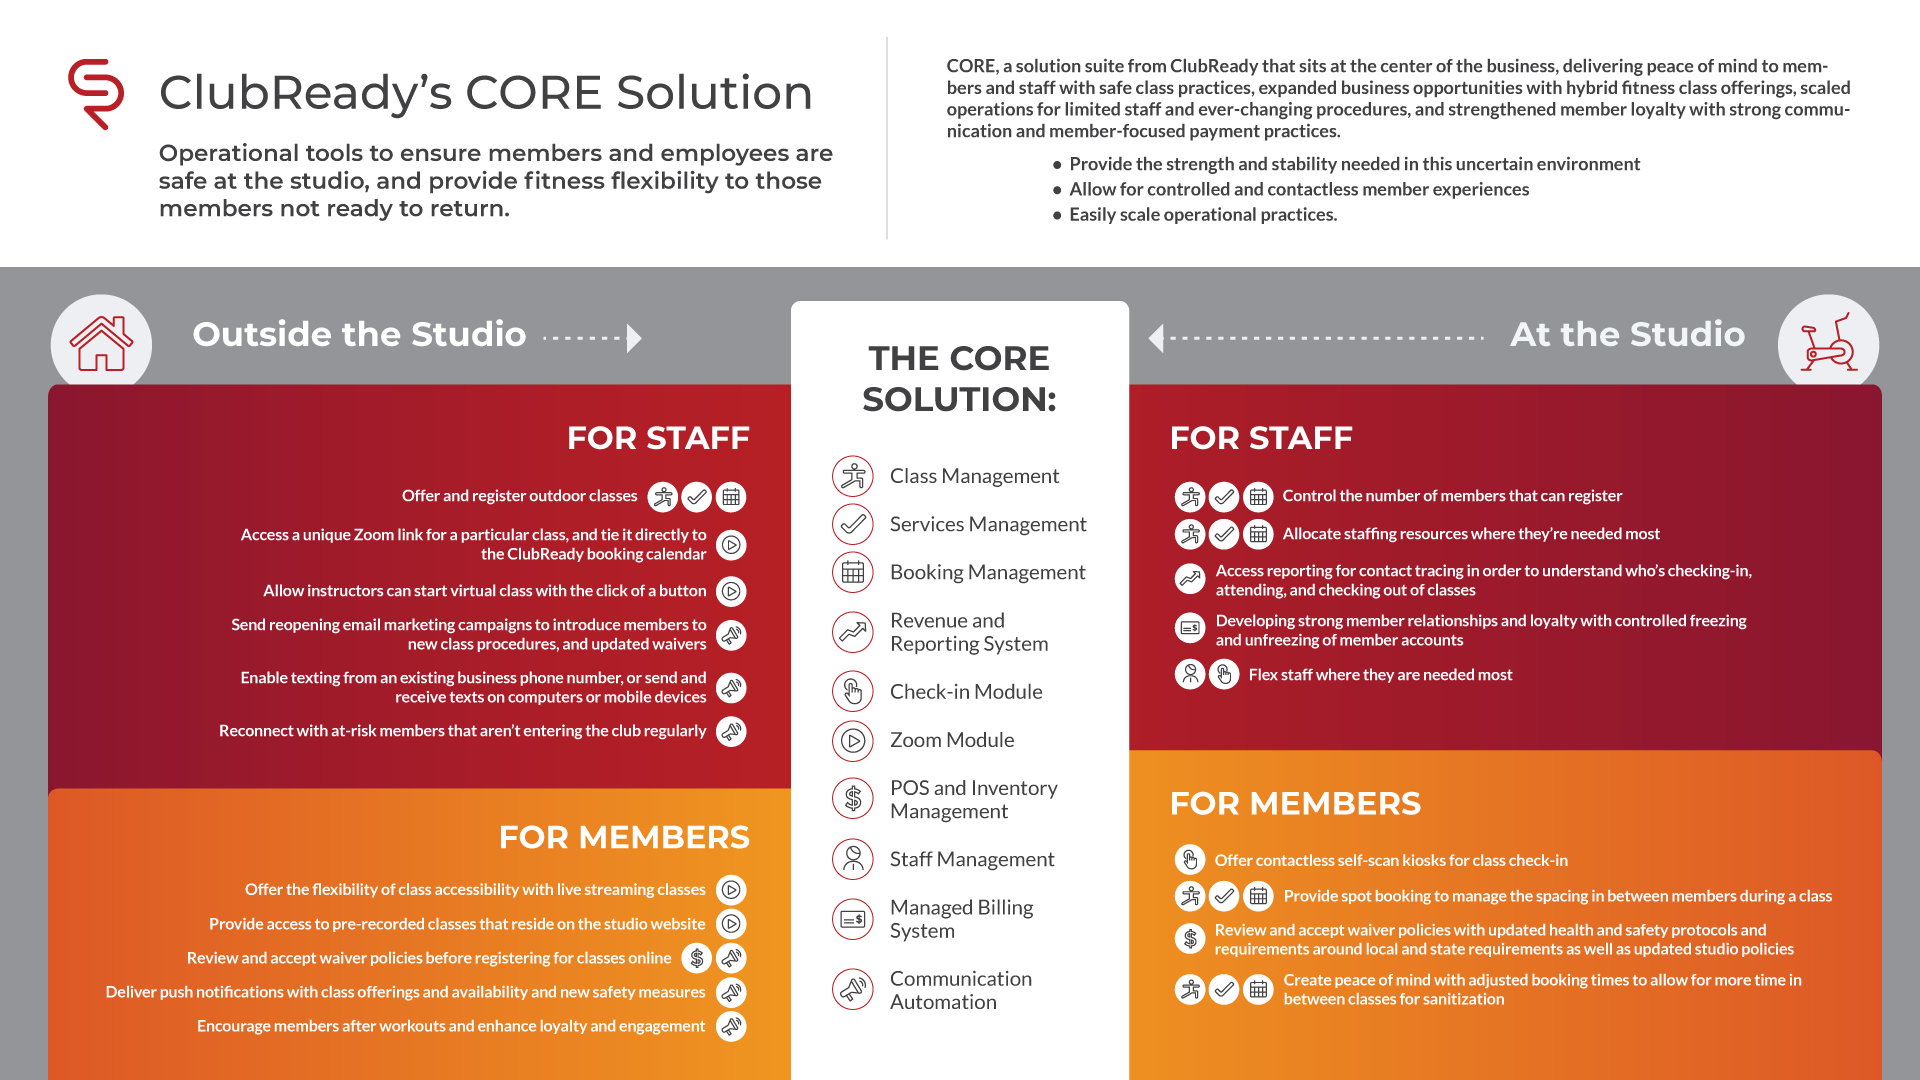 CORE Solution Suite